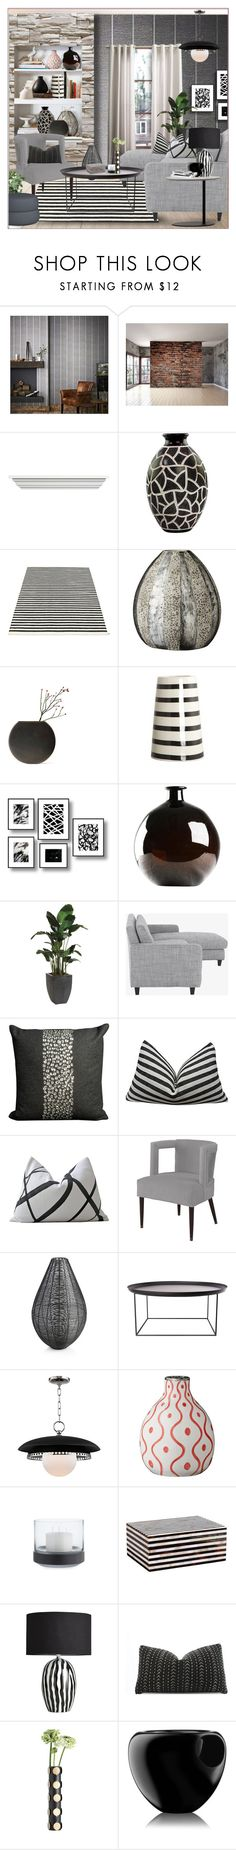 """Bold Graphic Lines"" by idetached ❤ liked on Polyvore featuring interior, interiors, interior design, home, home decor, interior decorating, Graham & Brown, WALL, Home Decorators Collection and NOVICA"